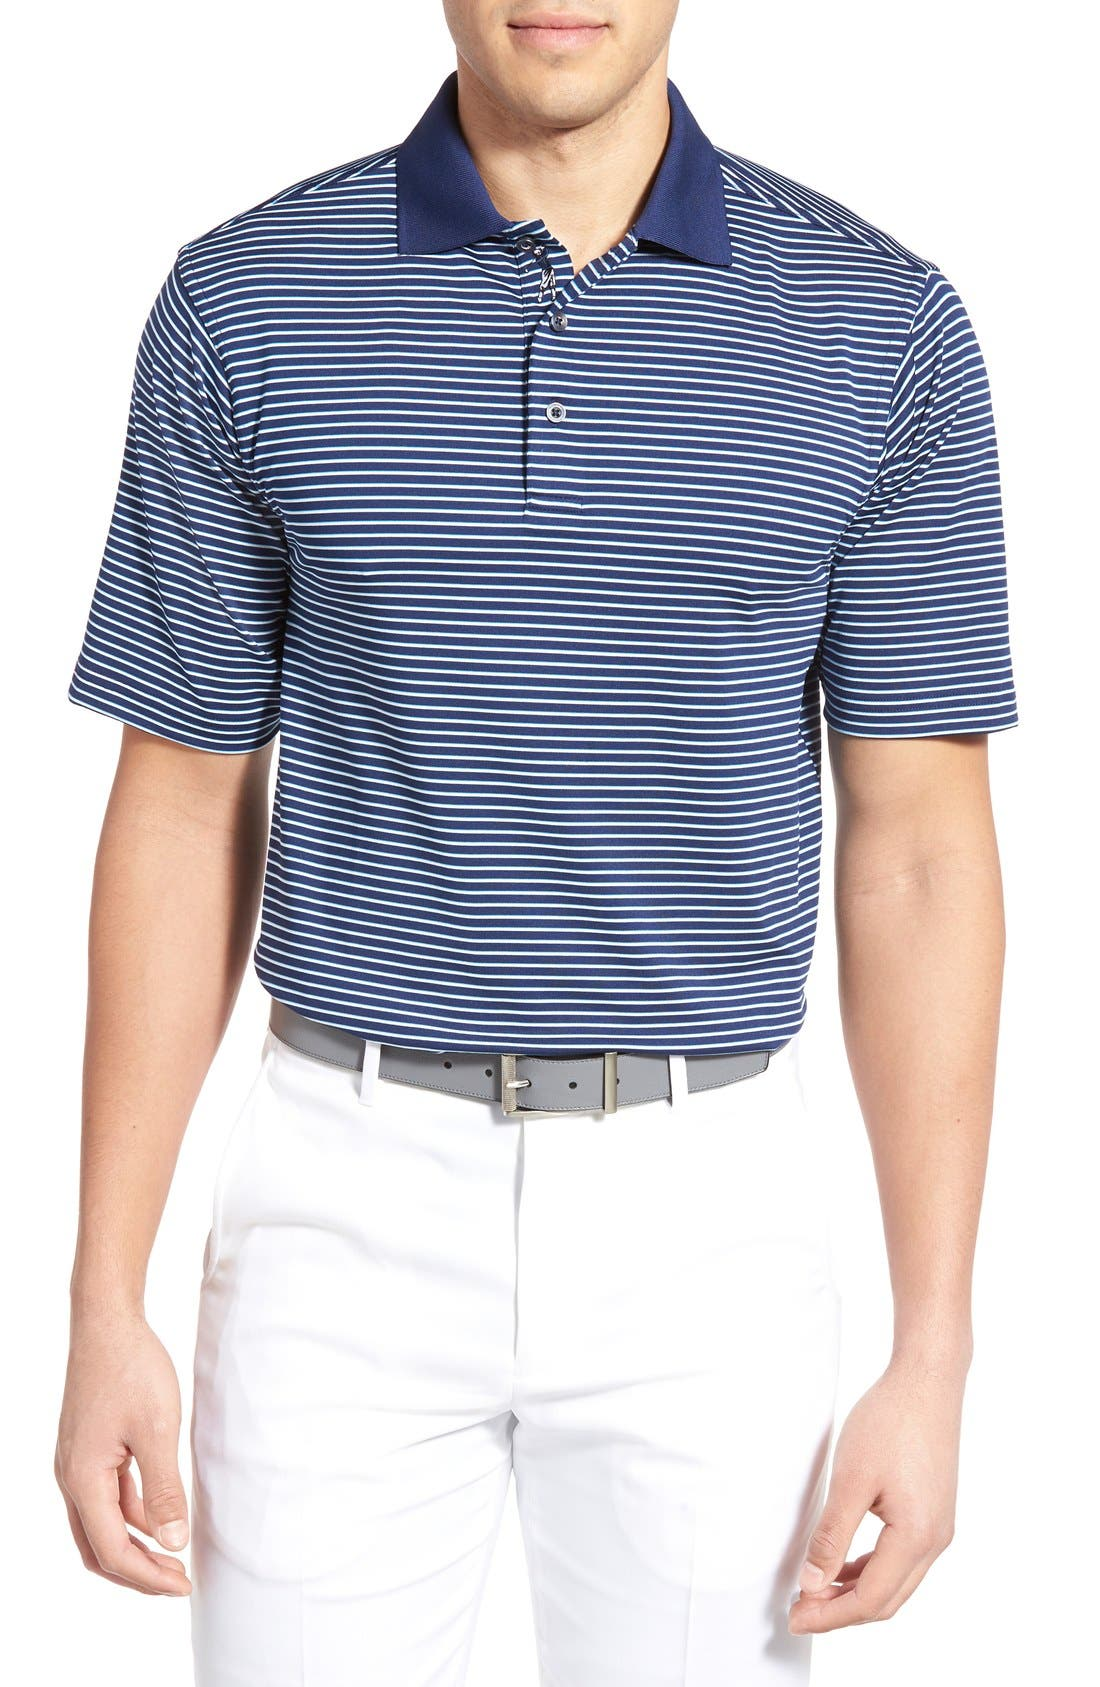 BOBBY JONES XH2O Edge Stripe Stretch Golf Polo